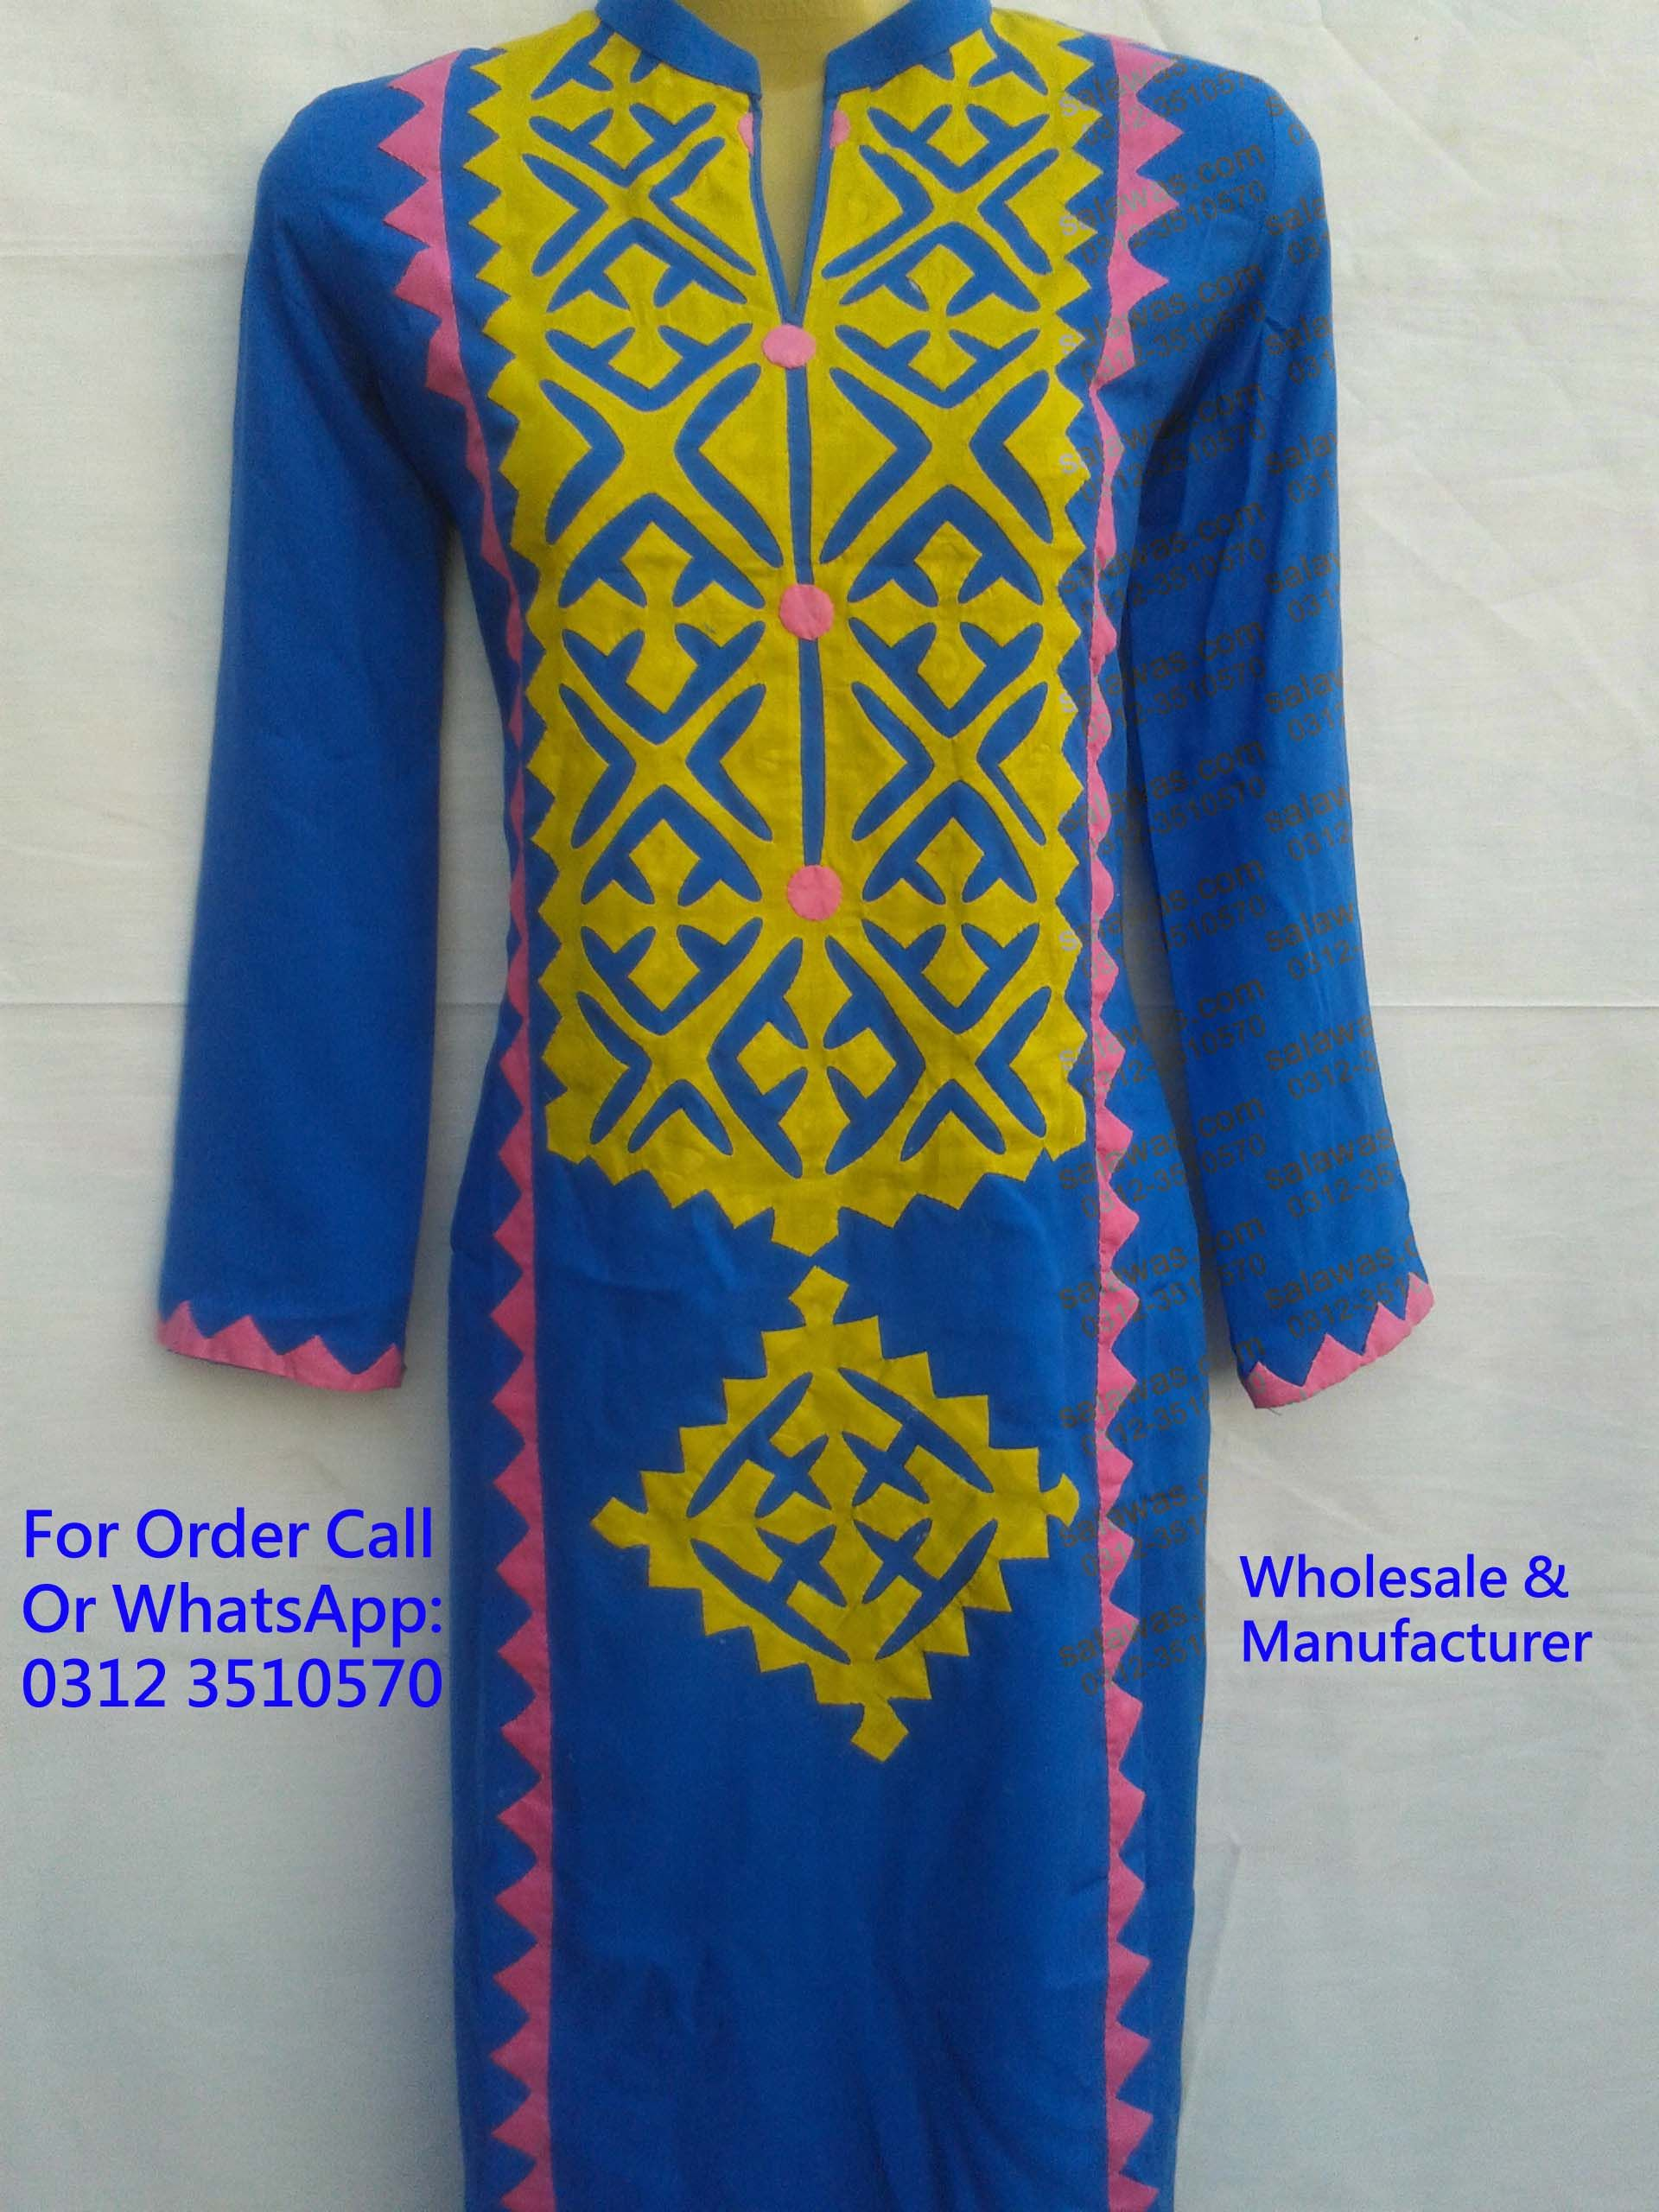 Sindhi Aplic Work New Designs For Dresses Kurti Shirts